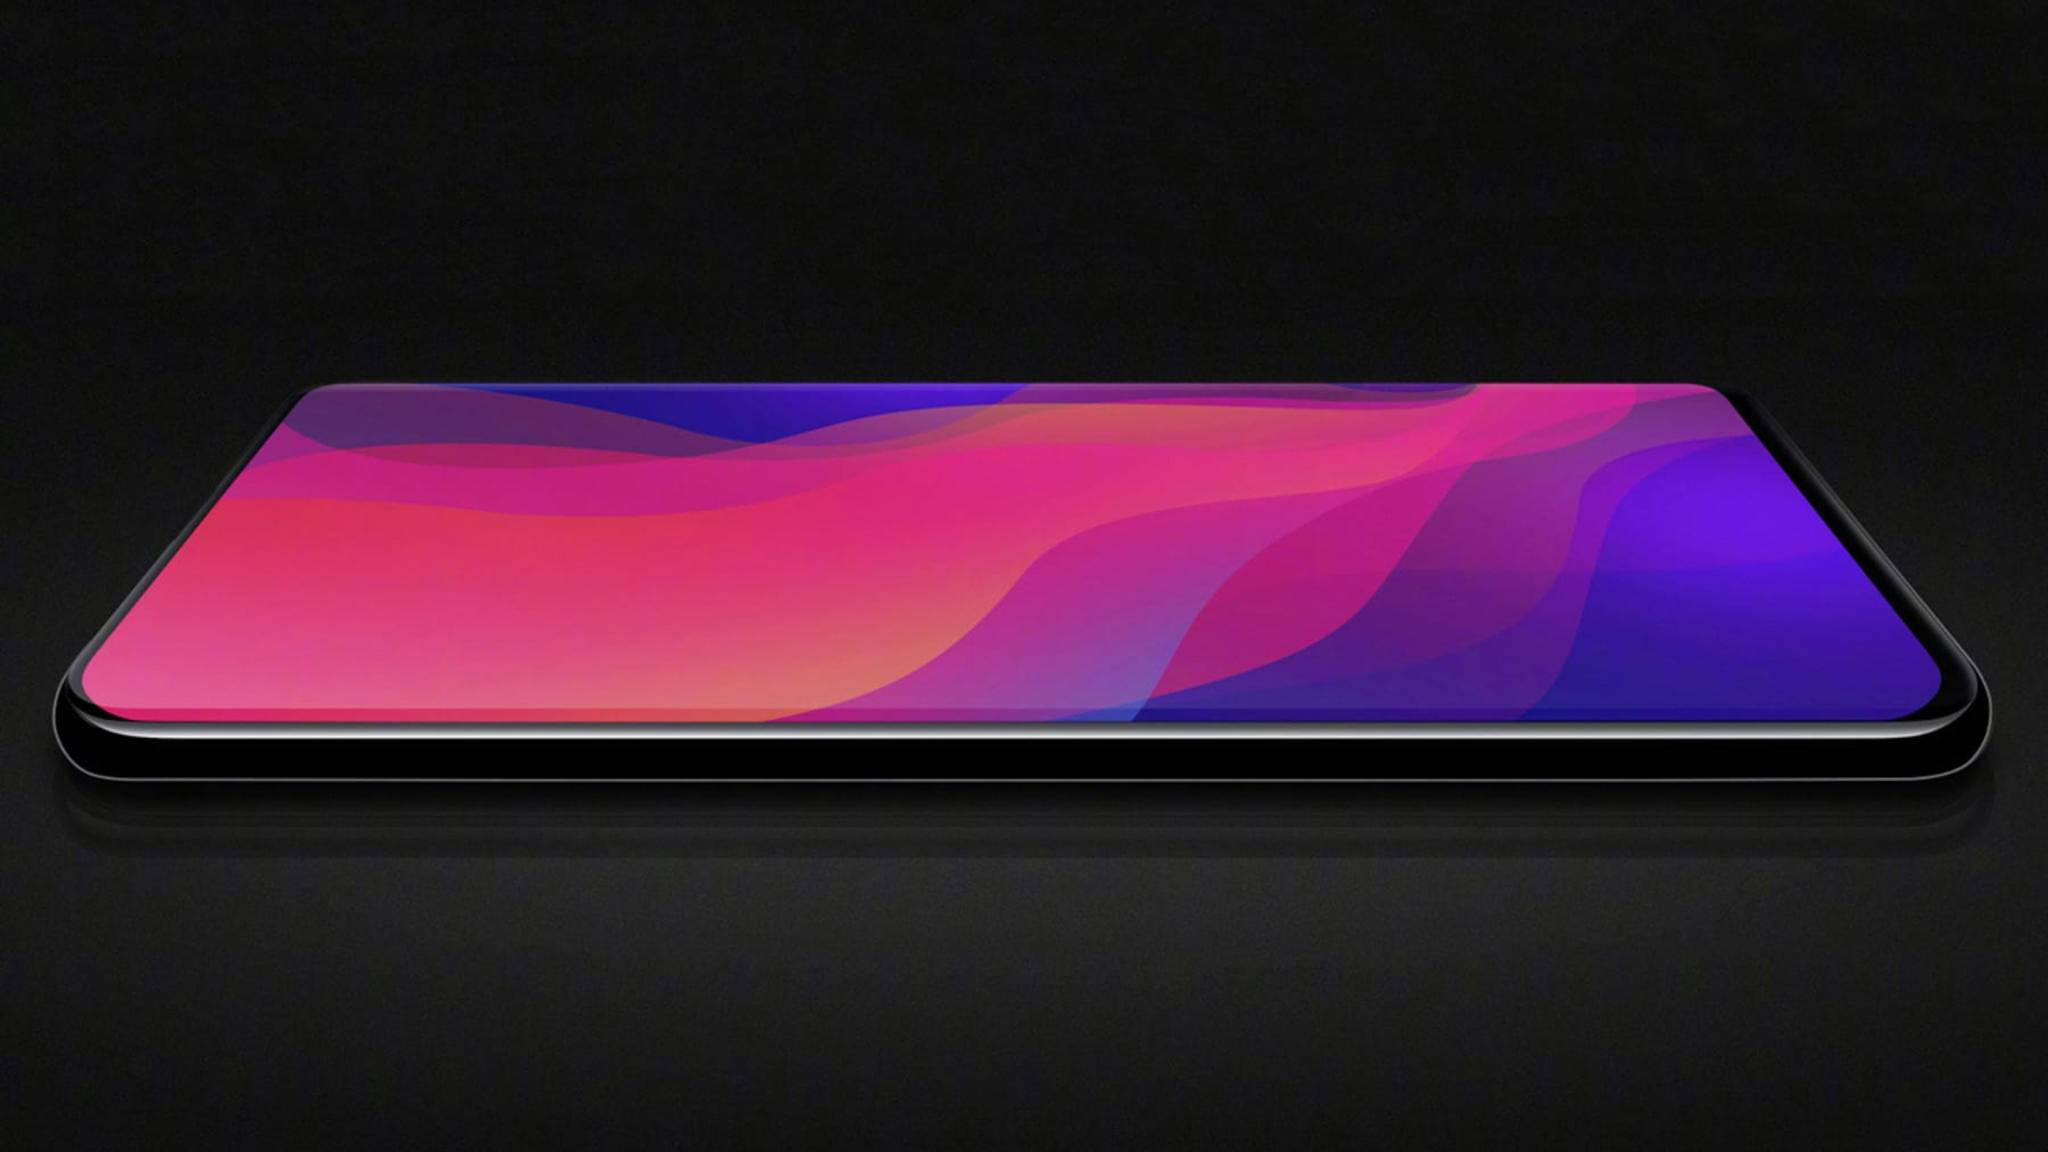 Das Oppo Find X hat aktuell (Stand Juni 2018) die beste Screen-to-Body-Ratio.